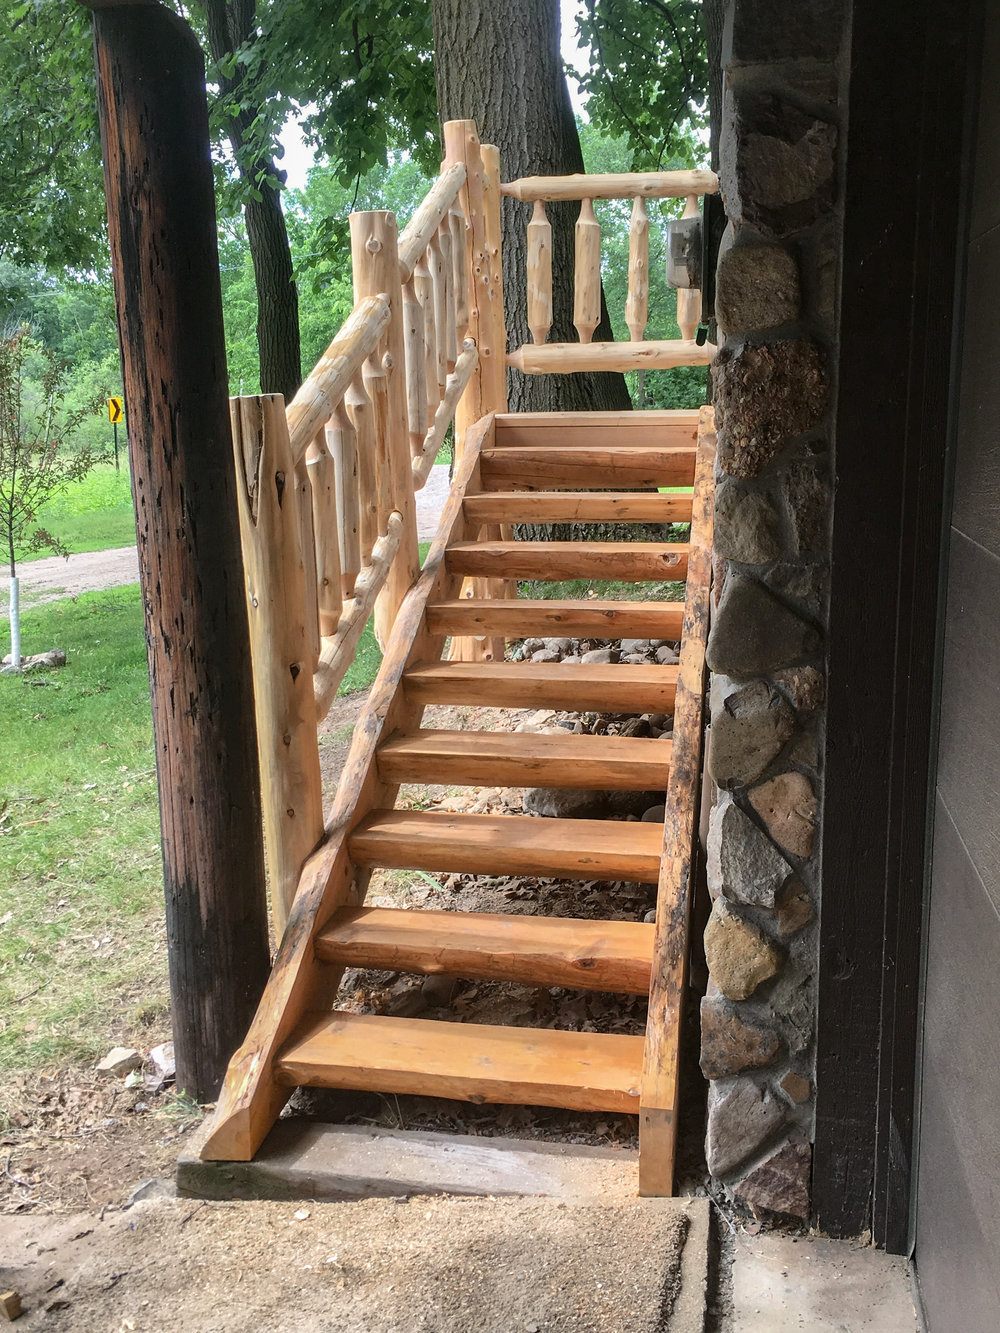 Cedar Log Railing and Stairs by Soderlund's Wood Mill in Chisago City, Minnesota